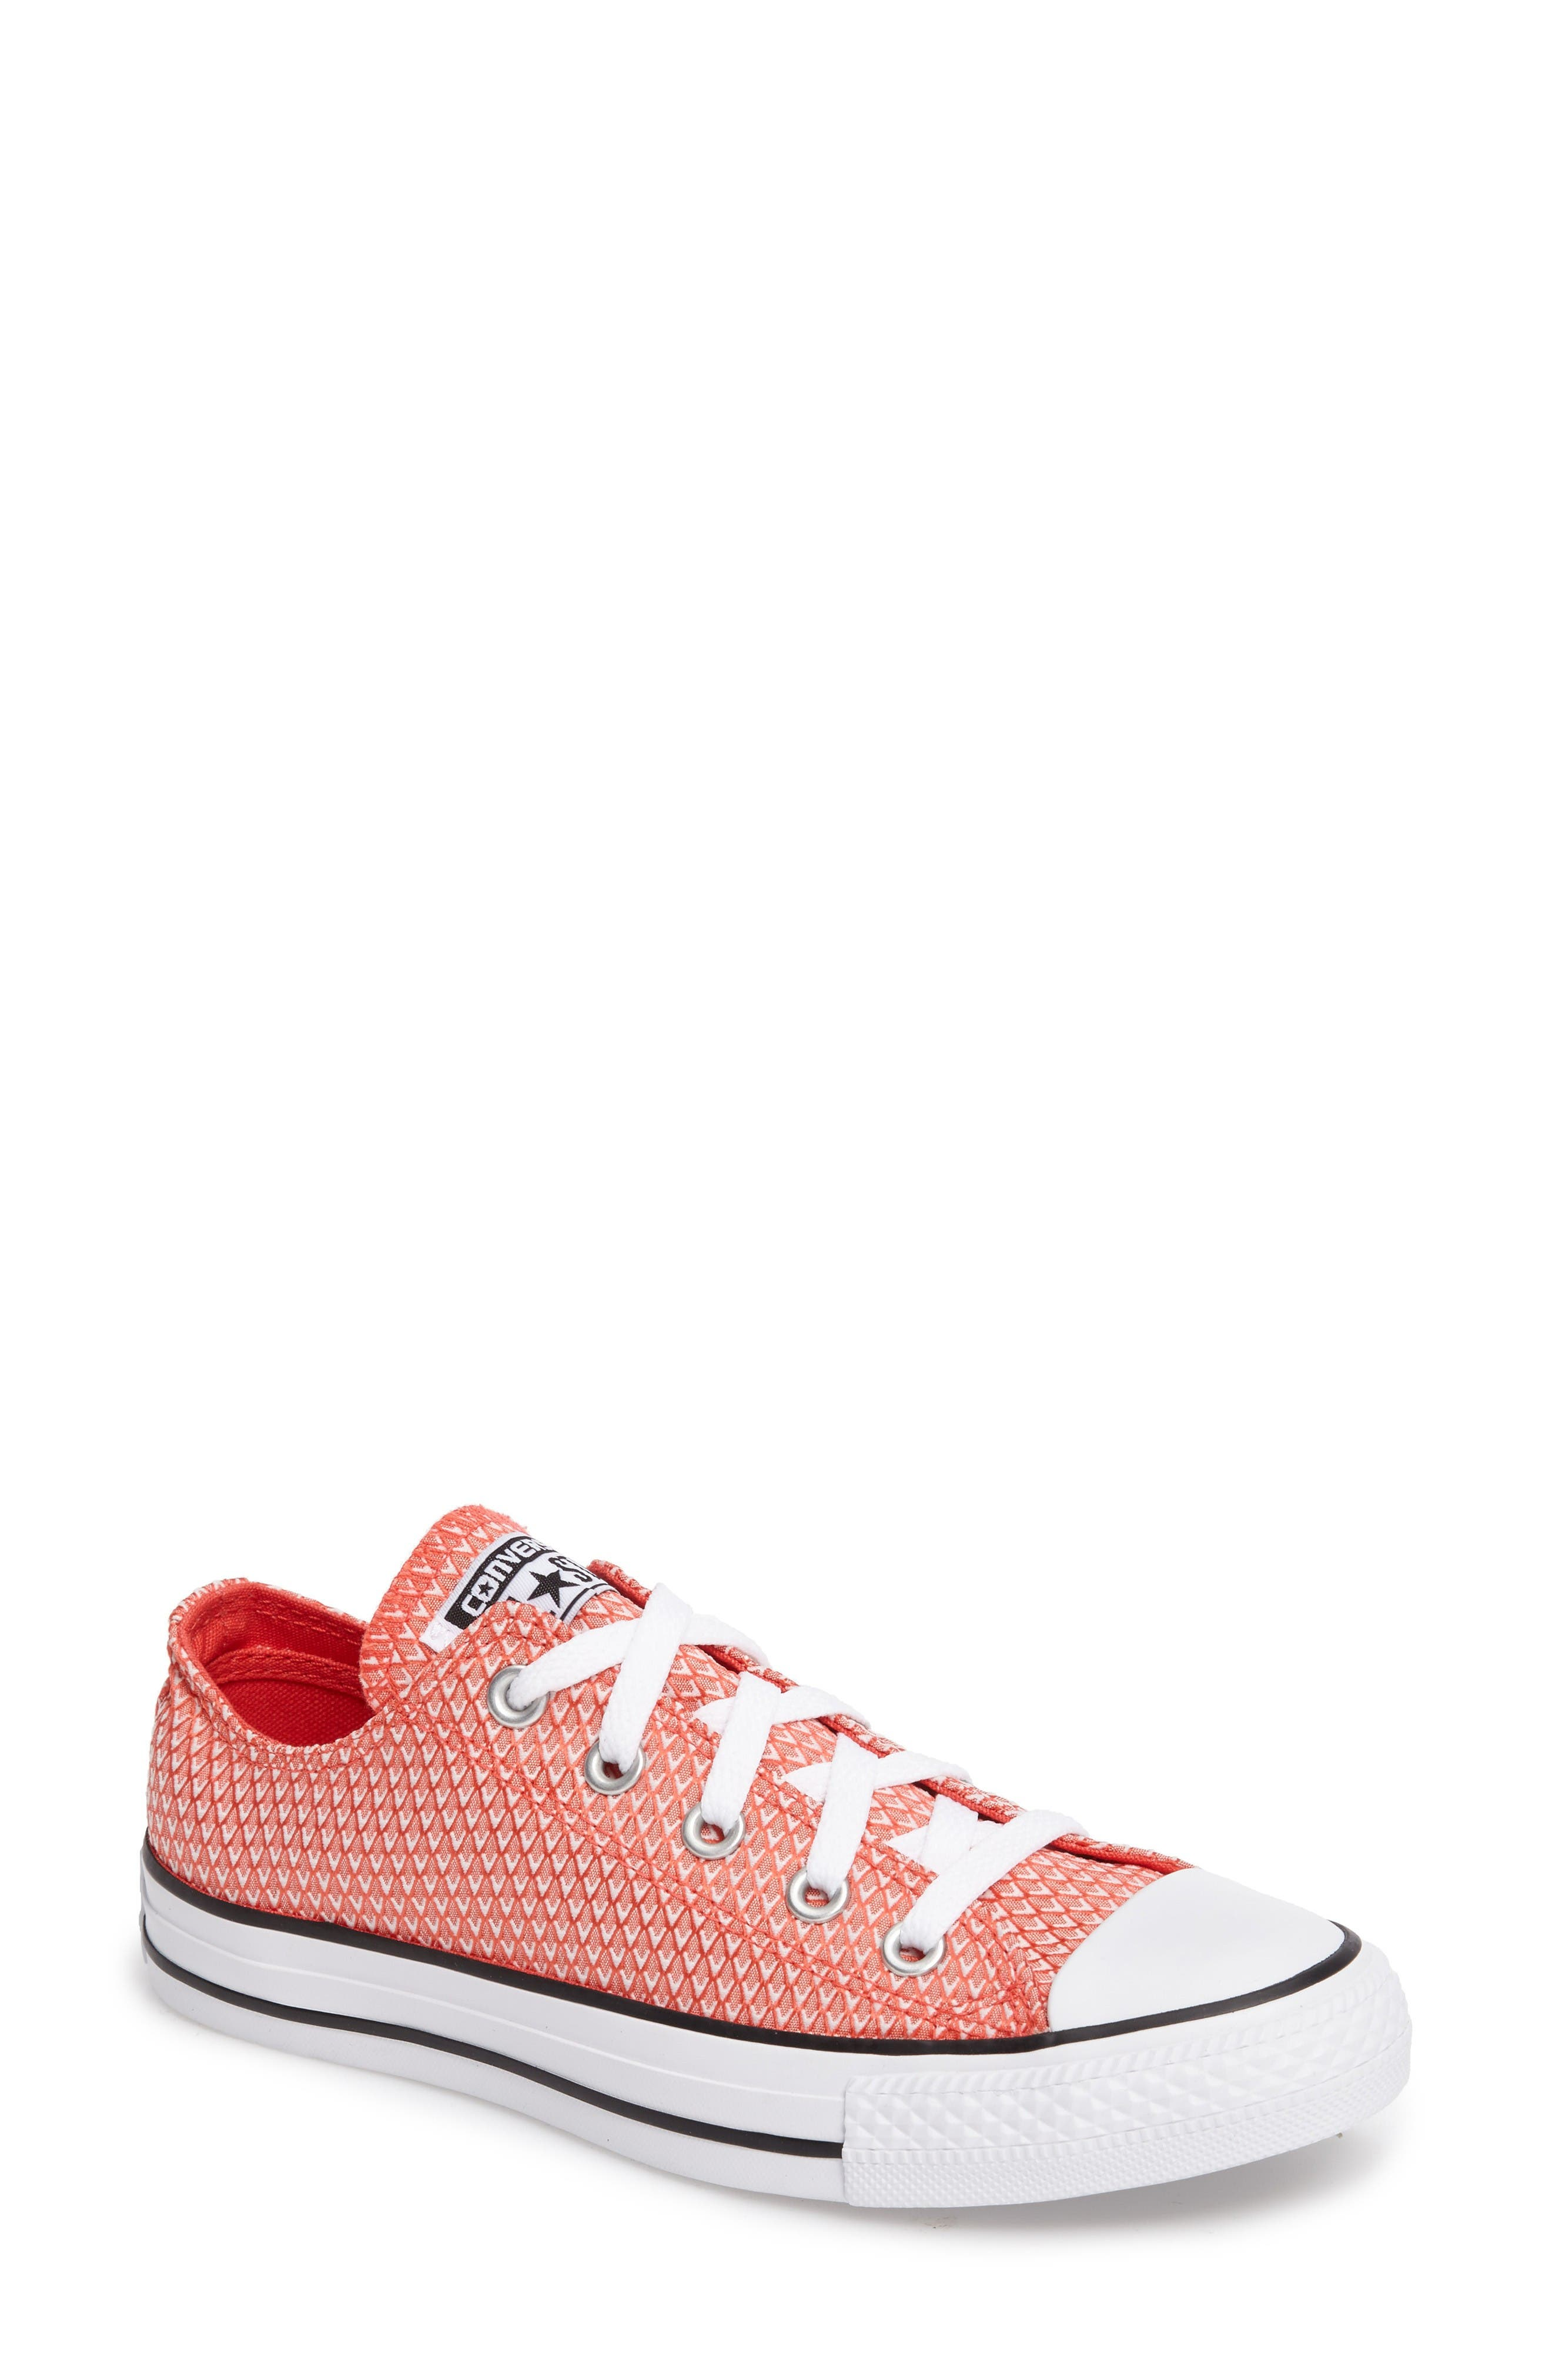 Alternate Image 1 Selected - Converse Chuck Taylor® All Star® Woven Ox Sneaker (Women)